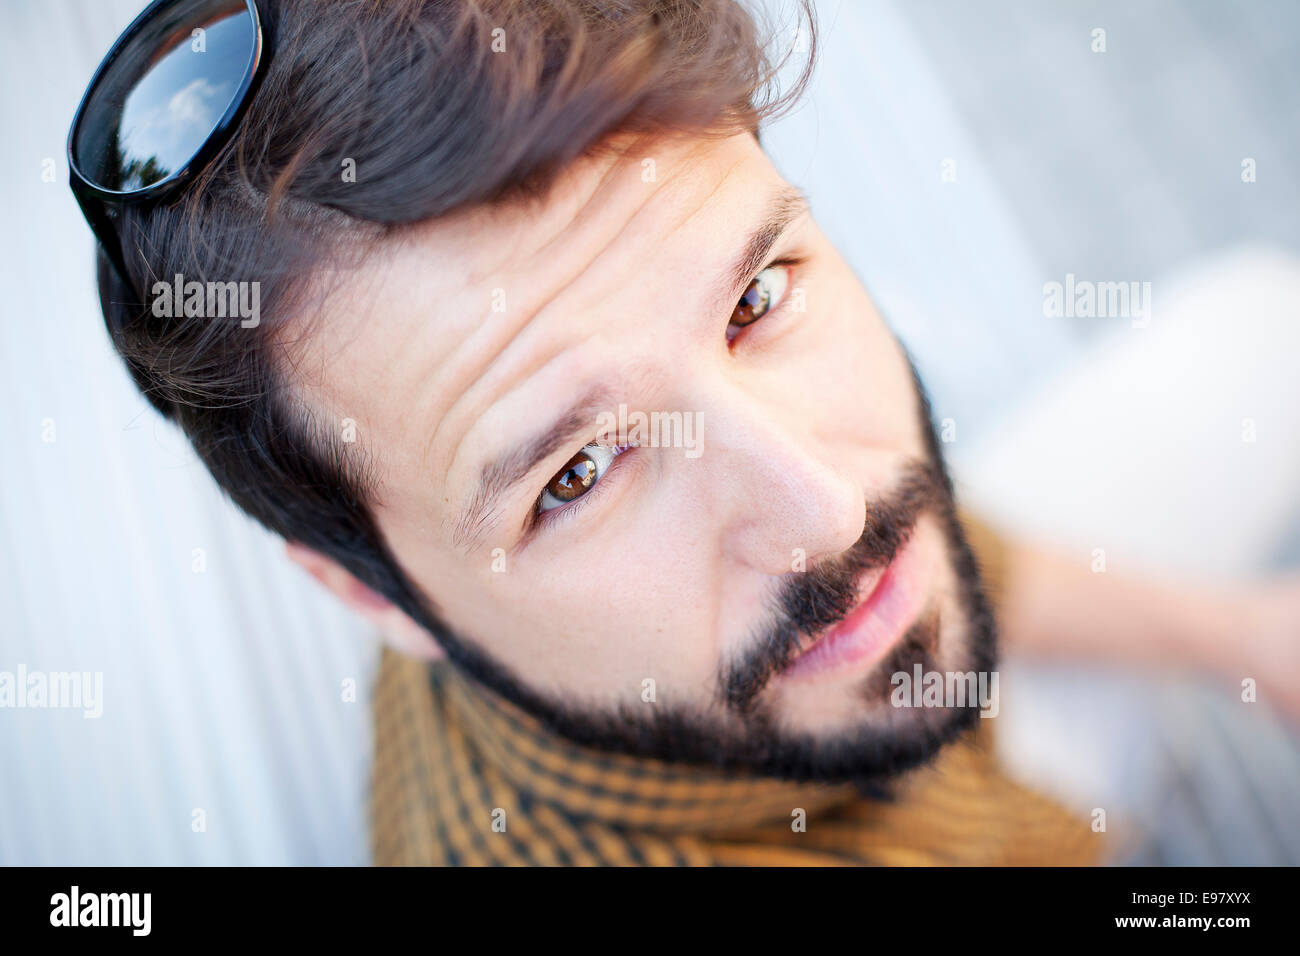 Portrait of young man with beard and brown hair - Stock Image